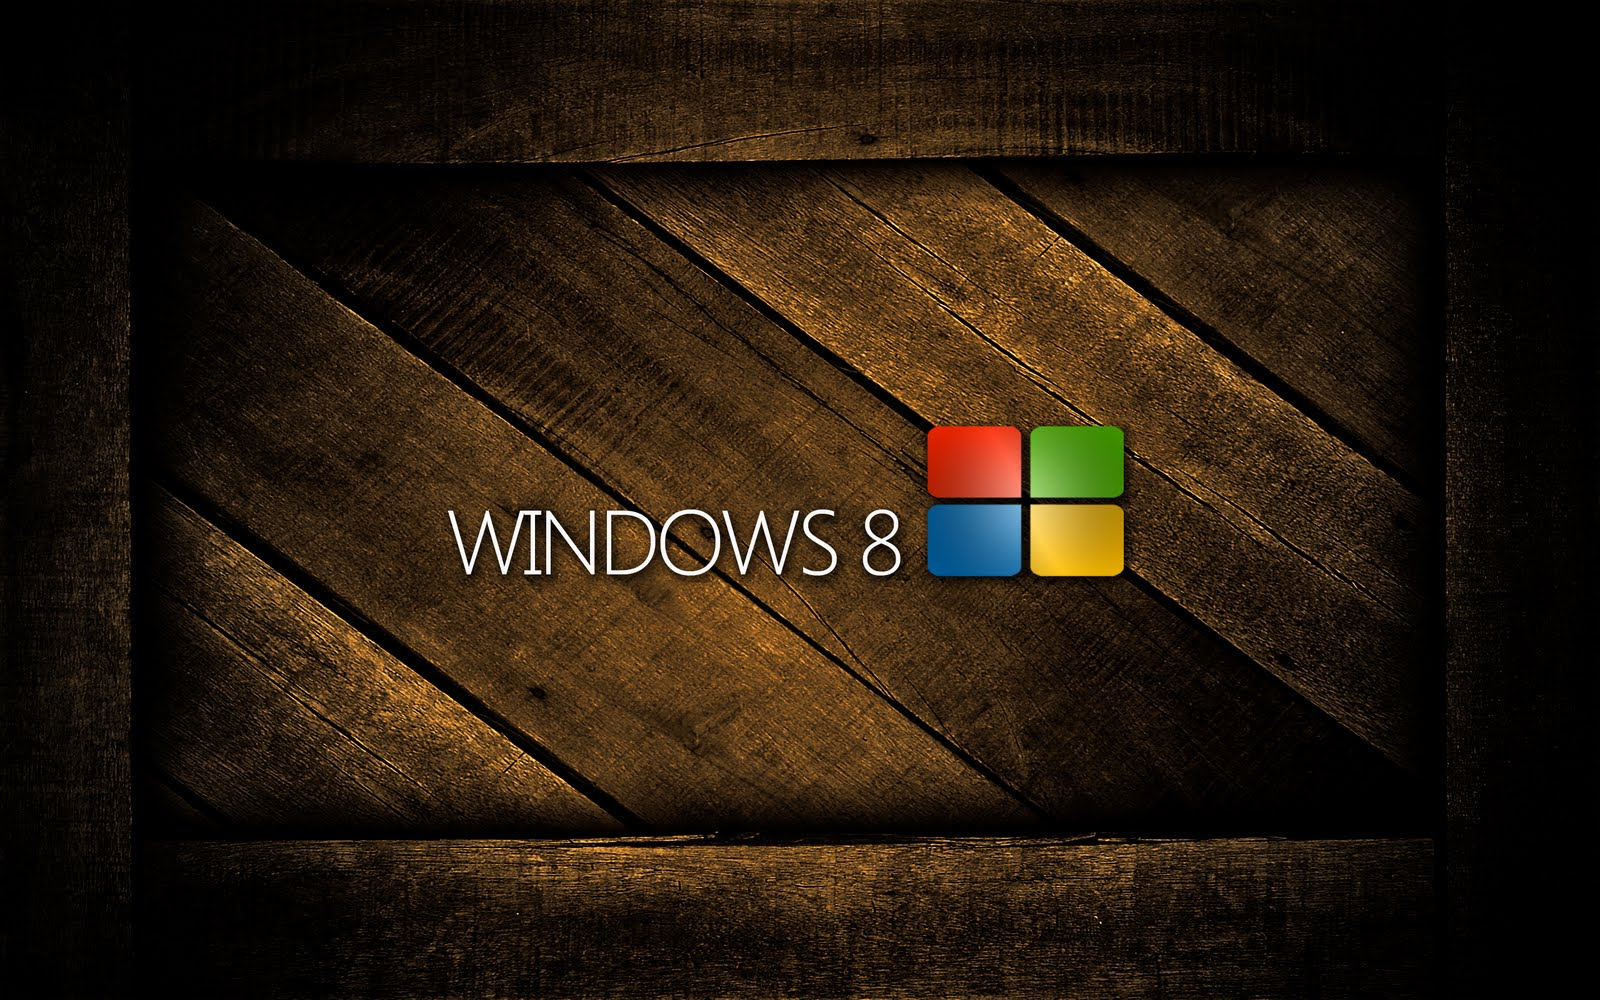 windows-8-wallpaper-official.jpg